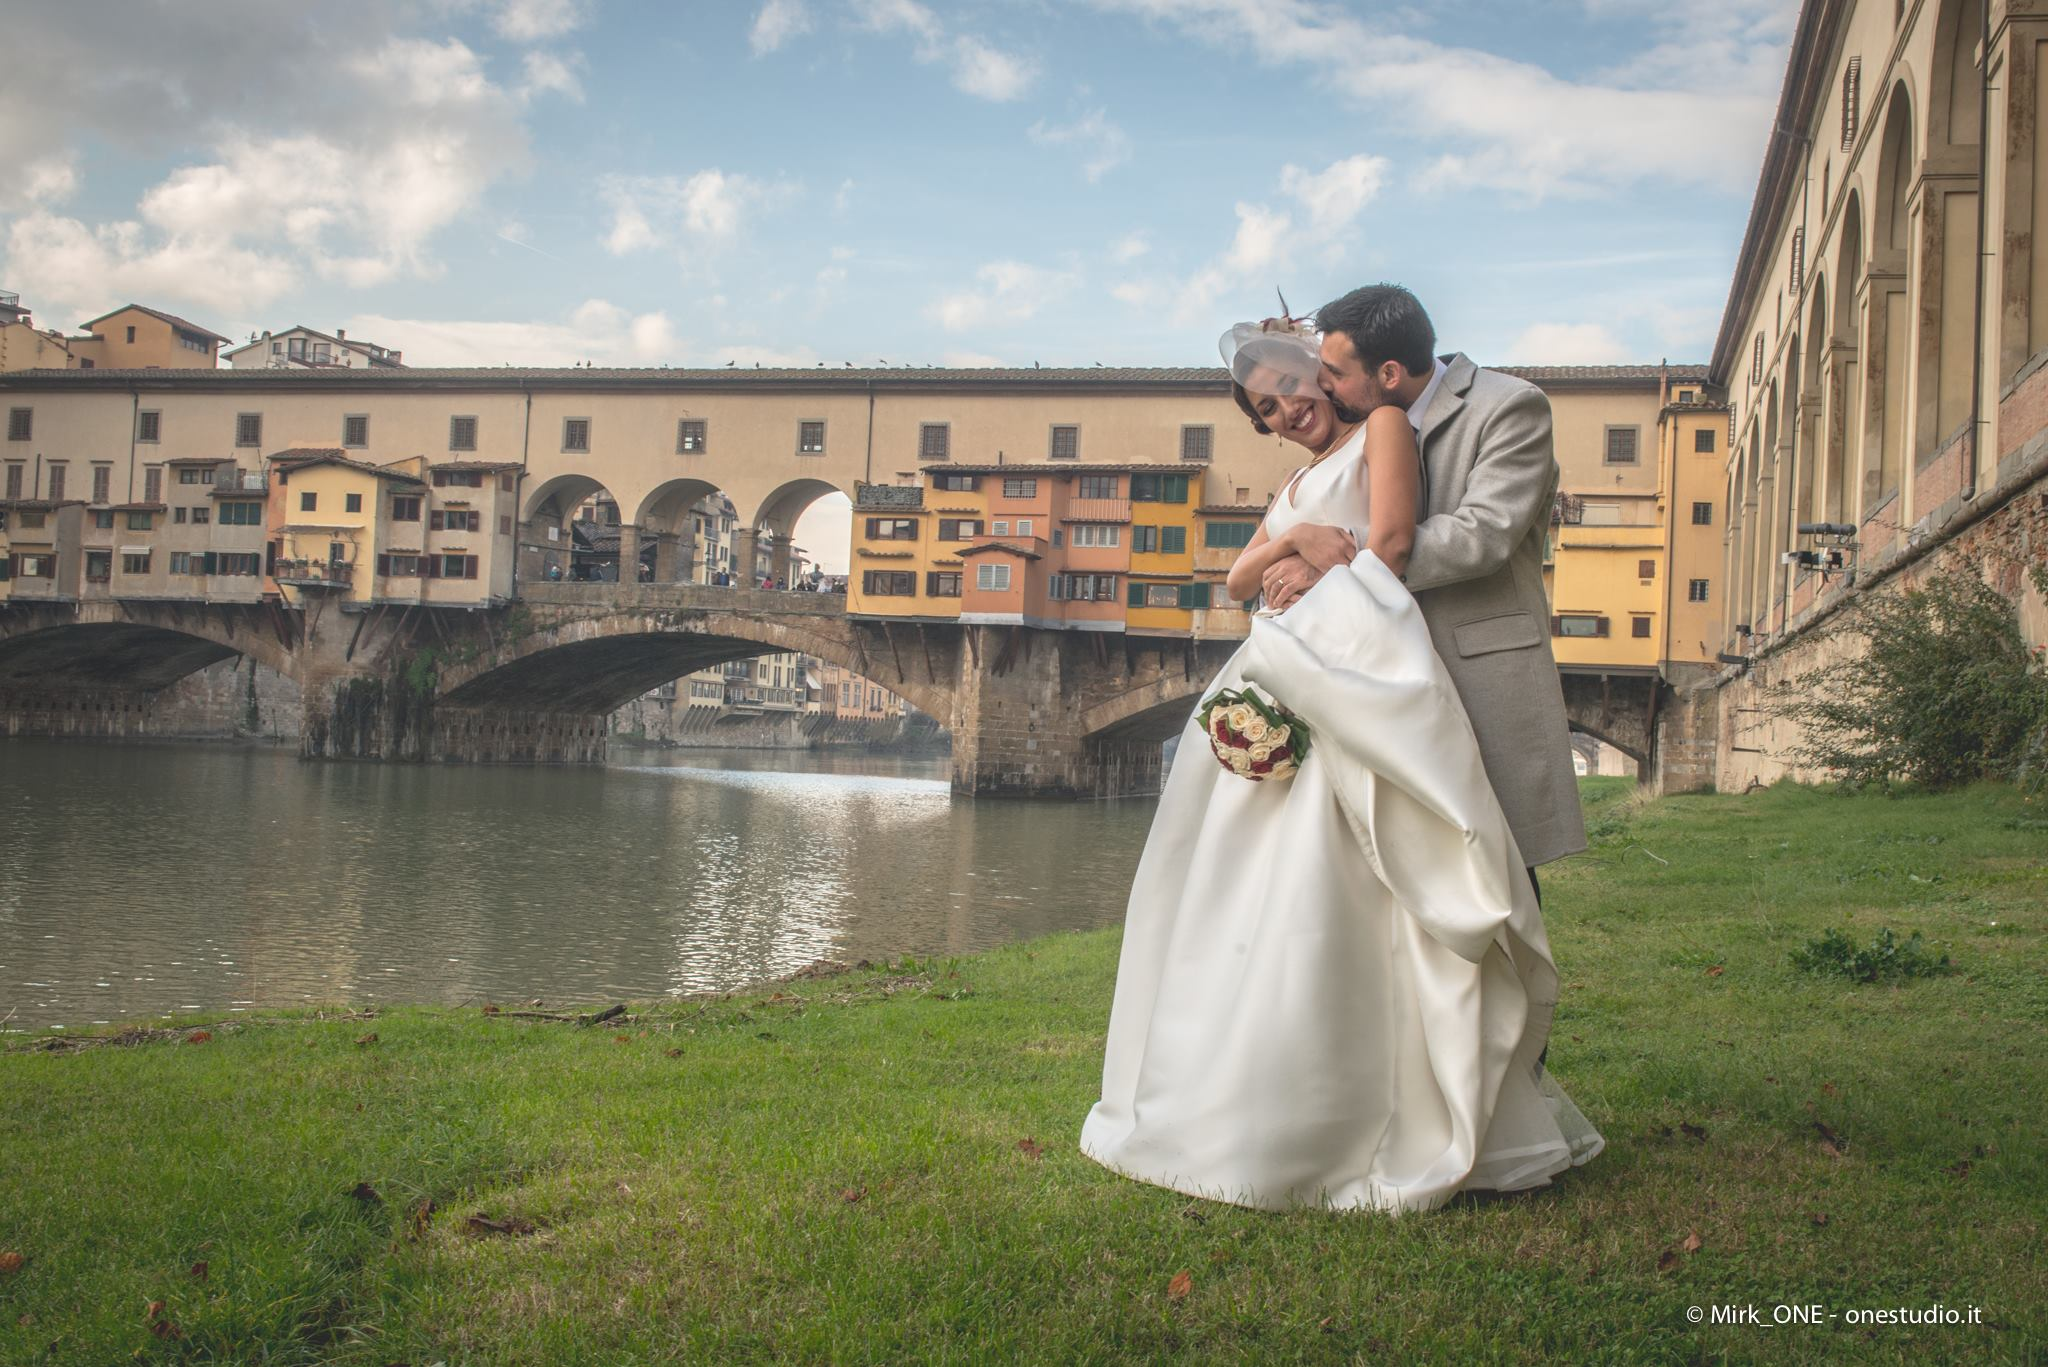 http://lnx.mirkone.it/wp-content/uploads/2015/07/mirk_ONE-fotografo-matrimonio-00832.jpg